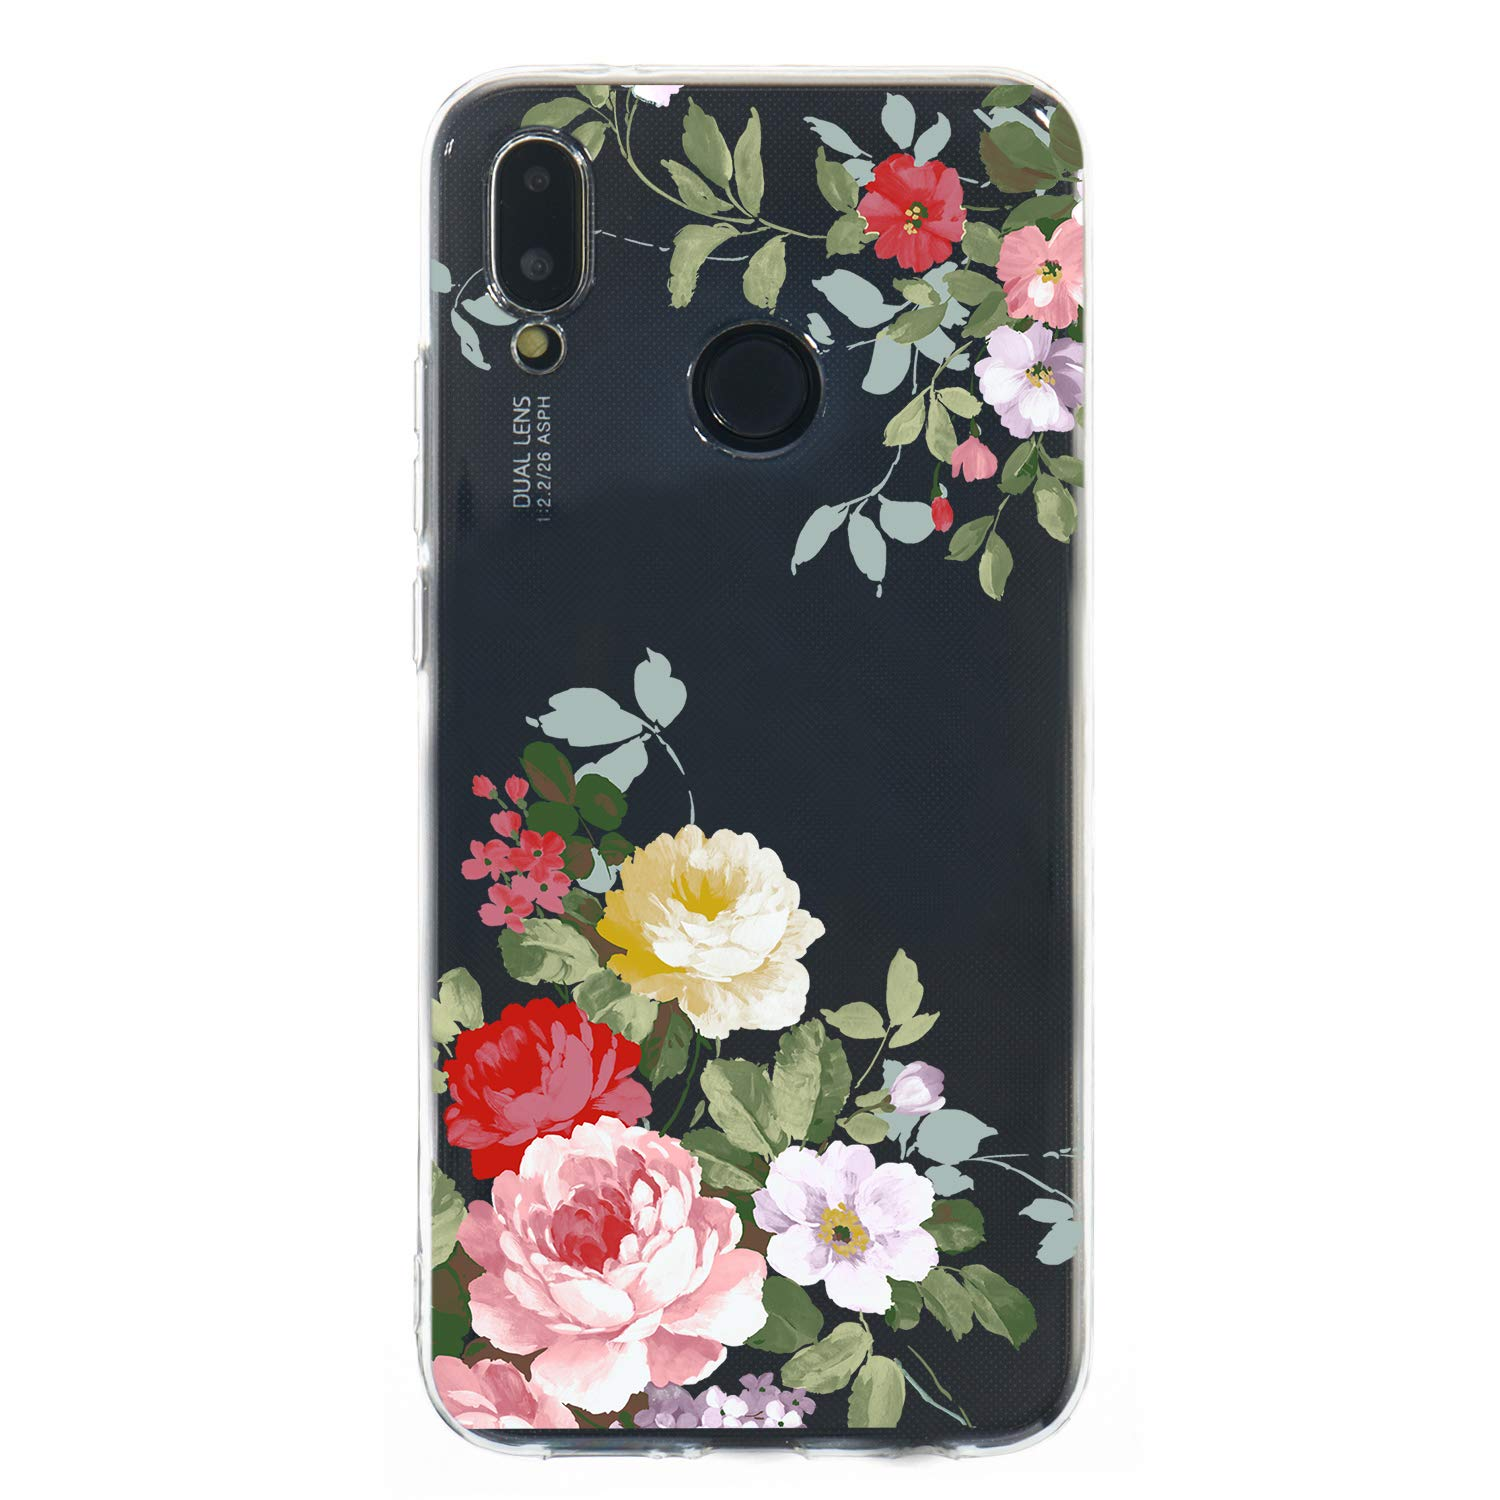 Soft Clear Case for Huawei P20 Lite,Flexible Plastic Case for Huawei P20 Lite,Moiky Creative Diagonal Green Branch Peony Printed Ultra Thin TPU Silicone Transparent Crystal Slim Fit Back Cover Case by MOIKY (Image #2)